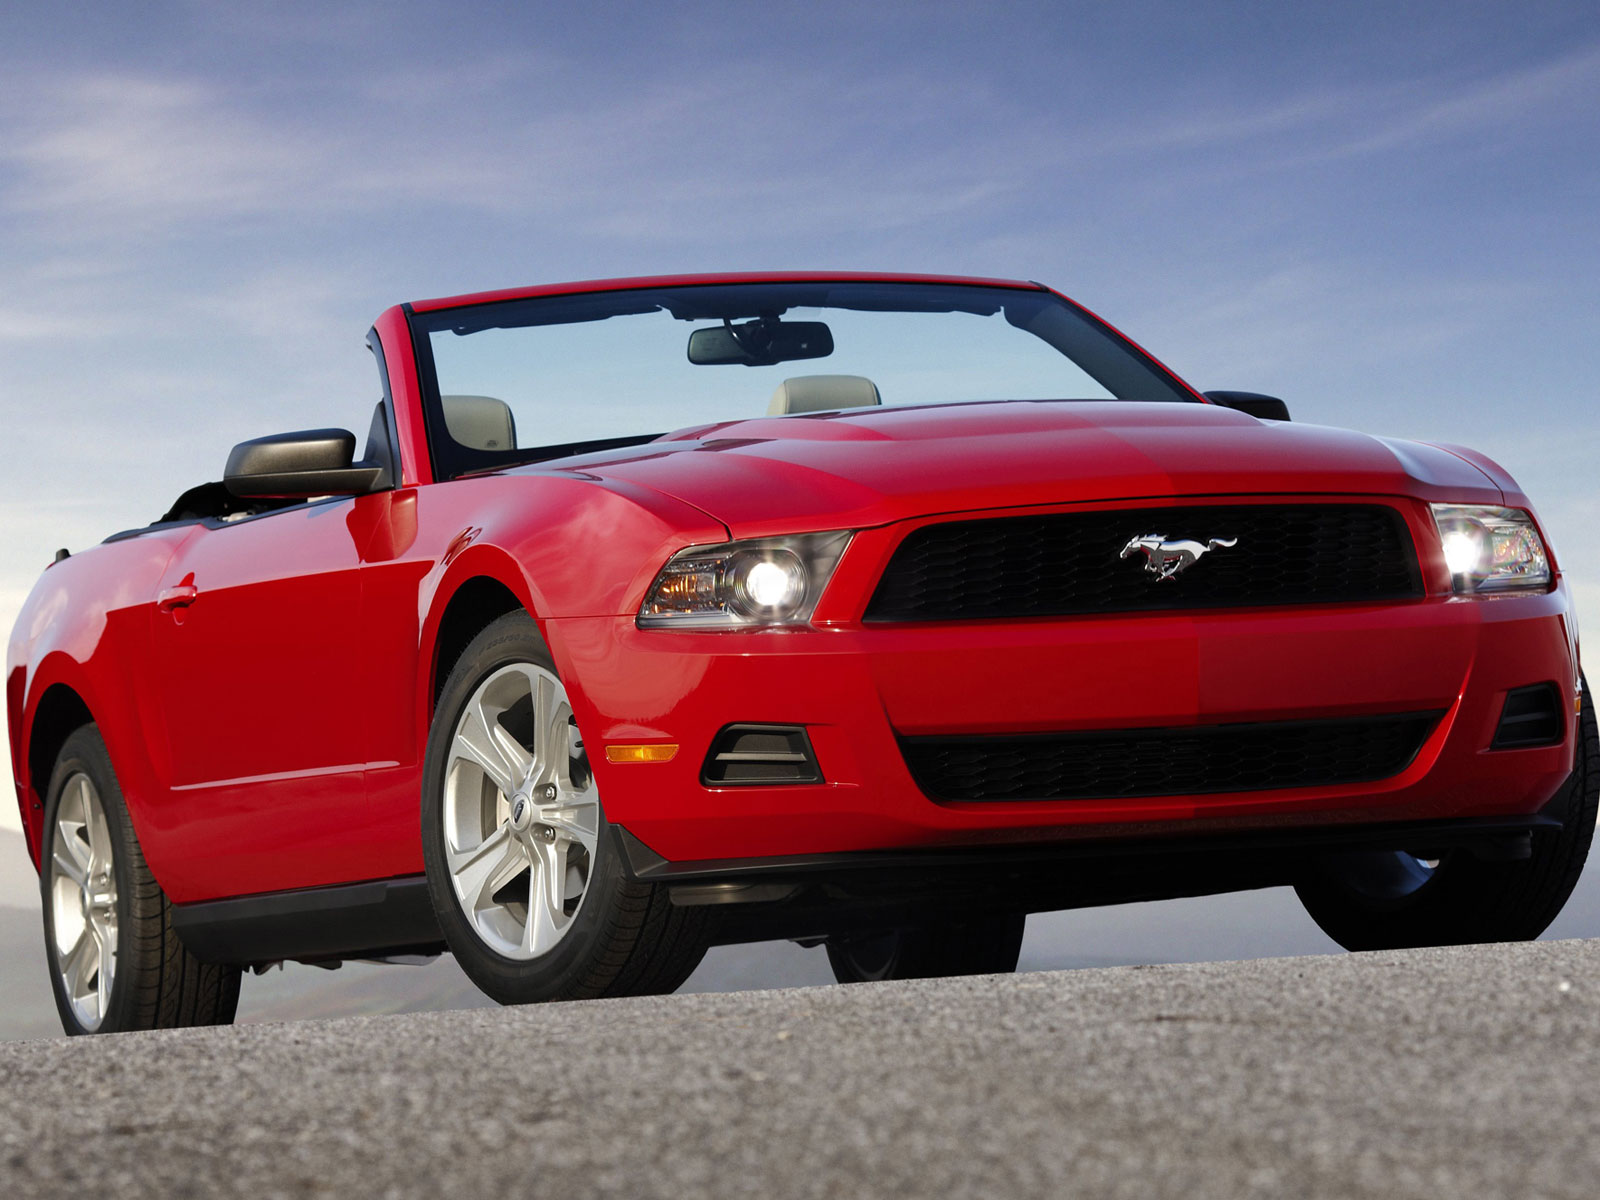 2005 ford mustang cabrio autoguru. Black Bedroom Furniture Sets. Home Design Ideas